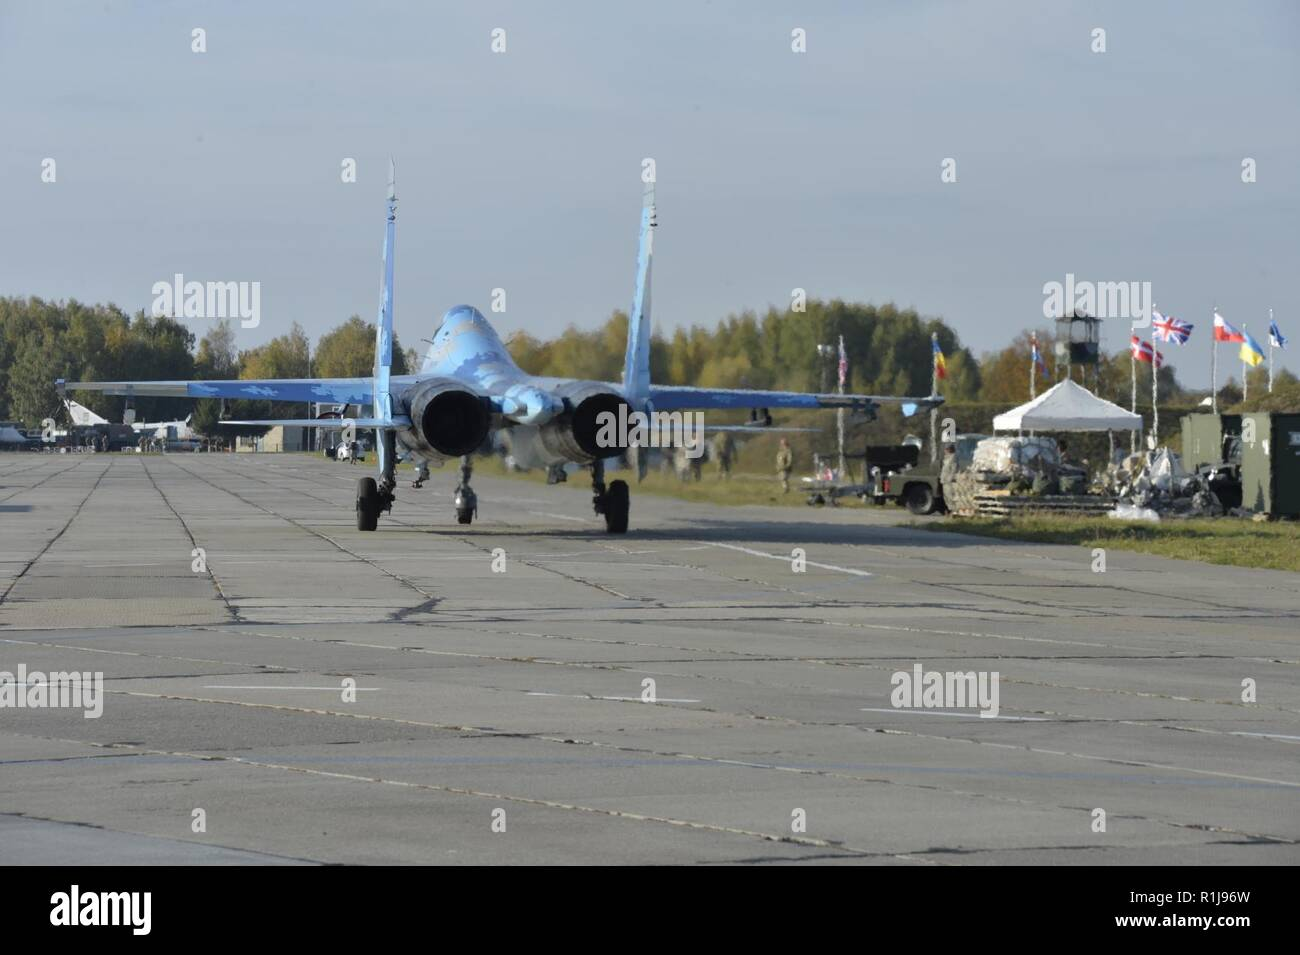 A Sukhoi Su-27 Flanker taxis down the flight line during the first day of flying for exercise Clear Sky 2018 at Starokostiantyniv Air Base, Ukraine, Oct. 9. The exercise promotes regional stability and security, while strengthening partner capabilities and fostering trust. - Stock Image